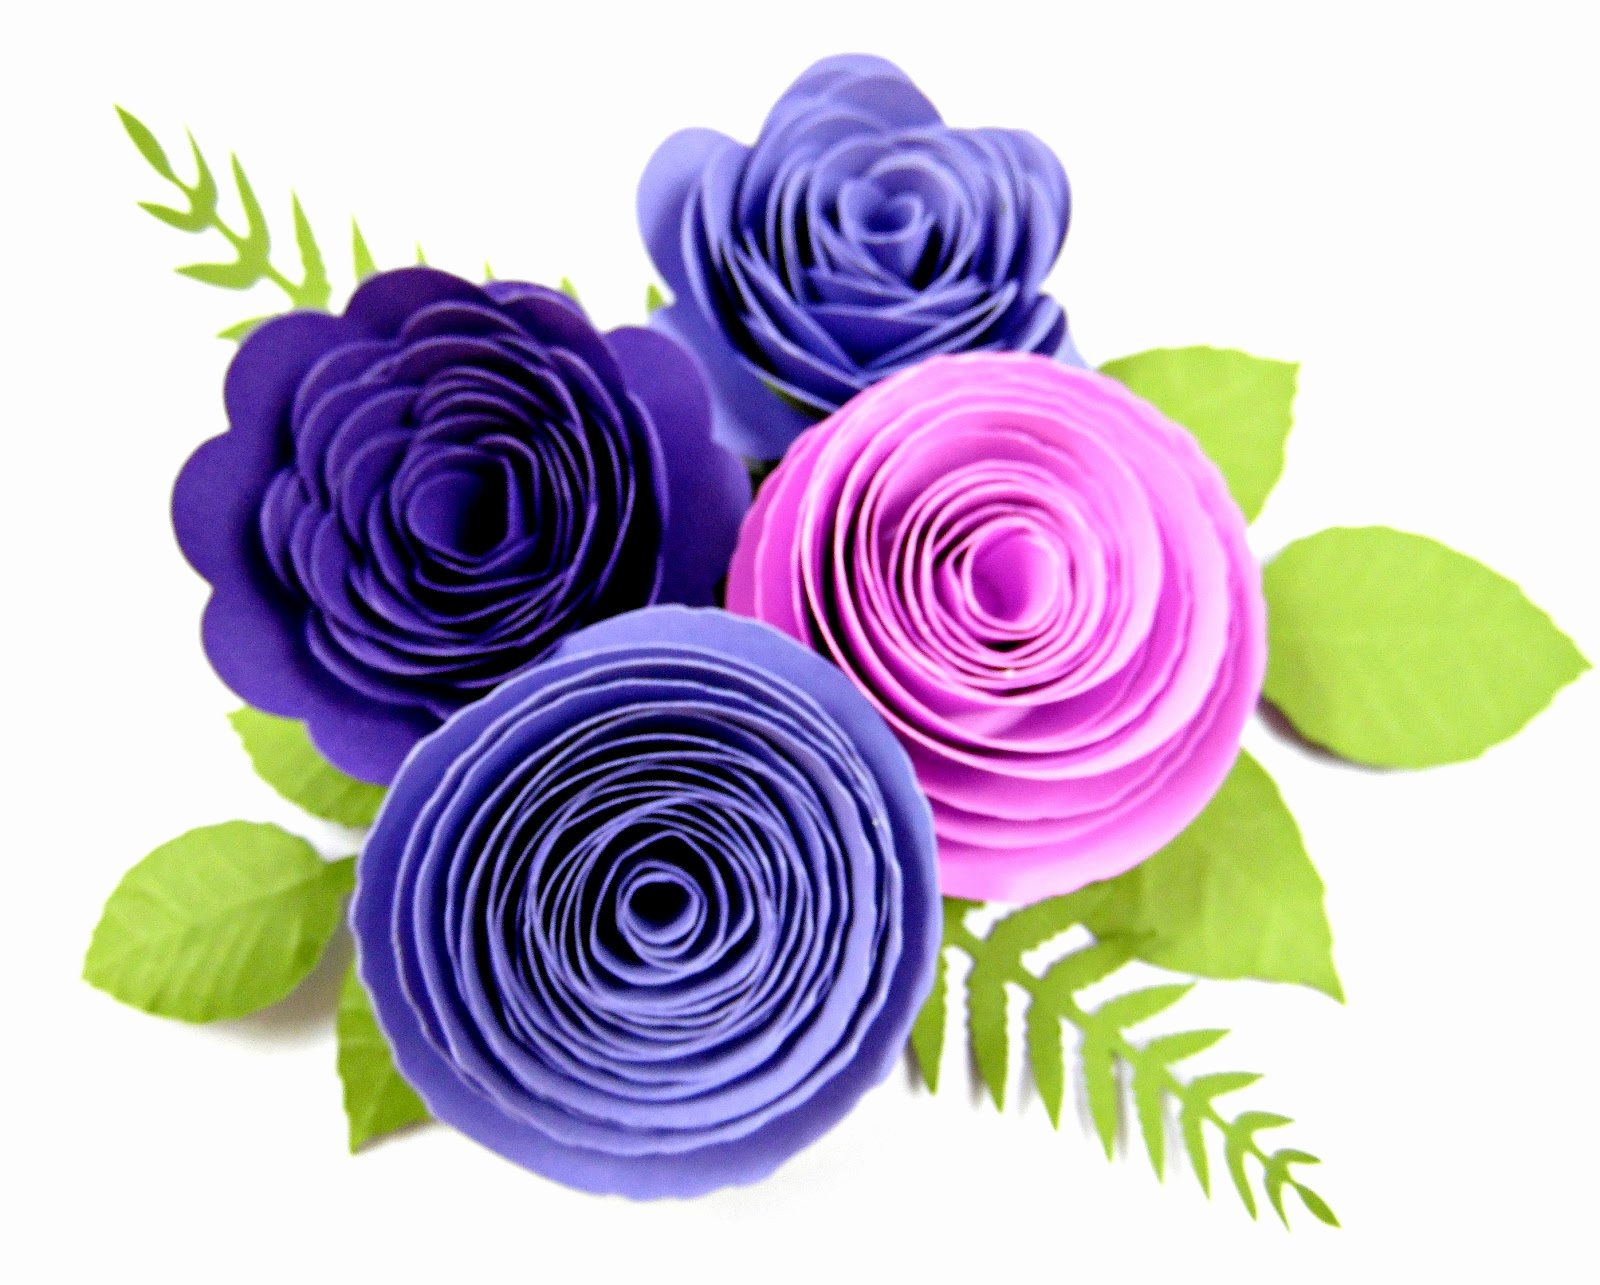 Small Paper Flower Templates Lovely Paper Flower Centers 5 Ways to Make Centers for Giant Flowers